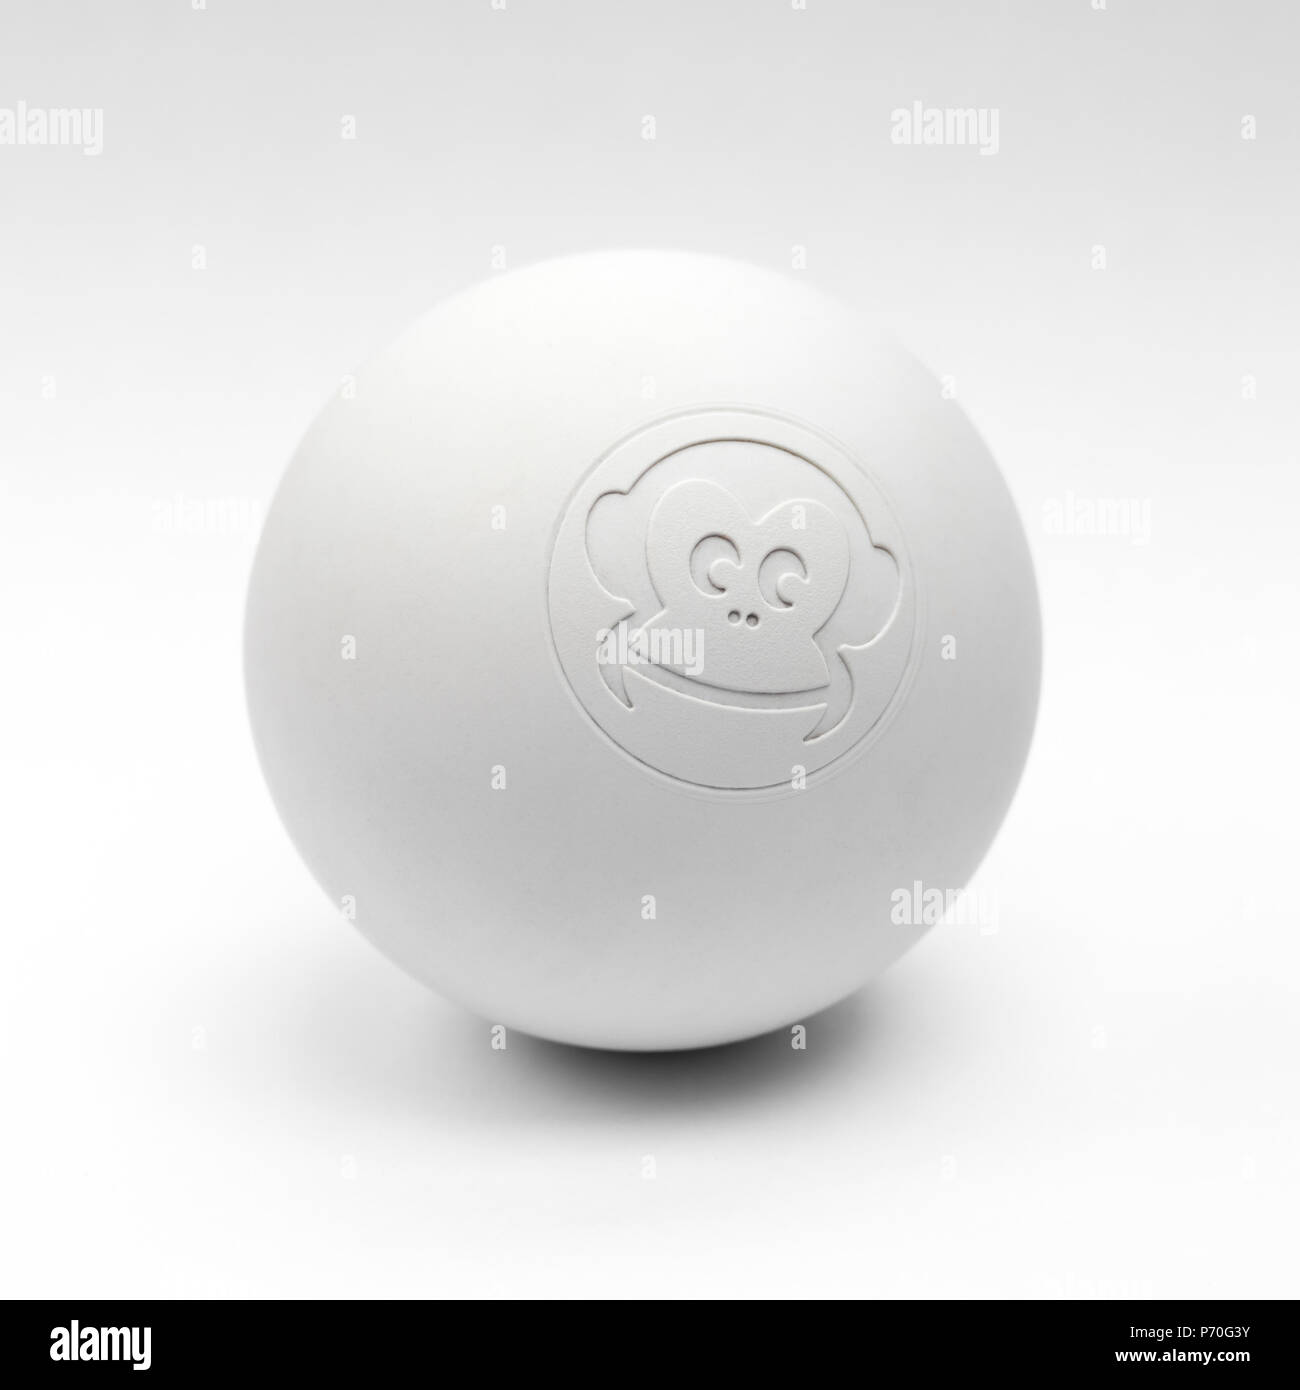 Captain-Lax white Lacrosse ball on white background - Stock Image